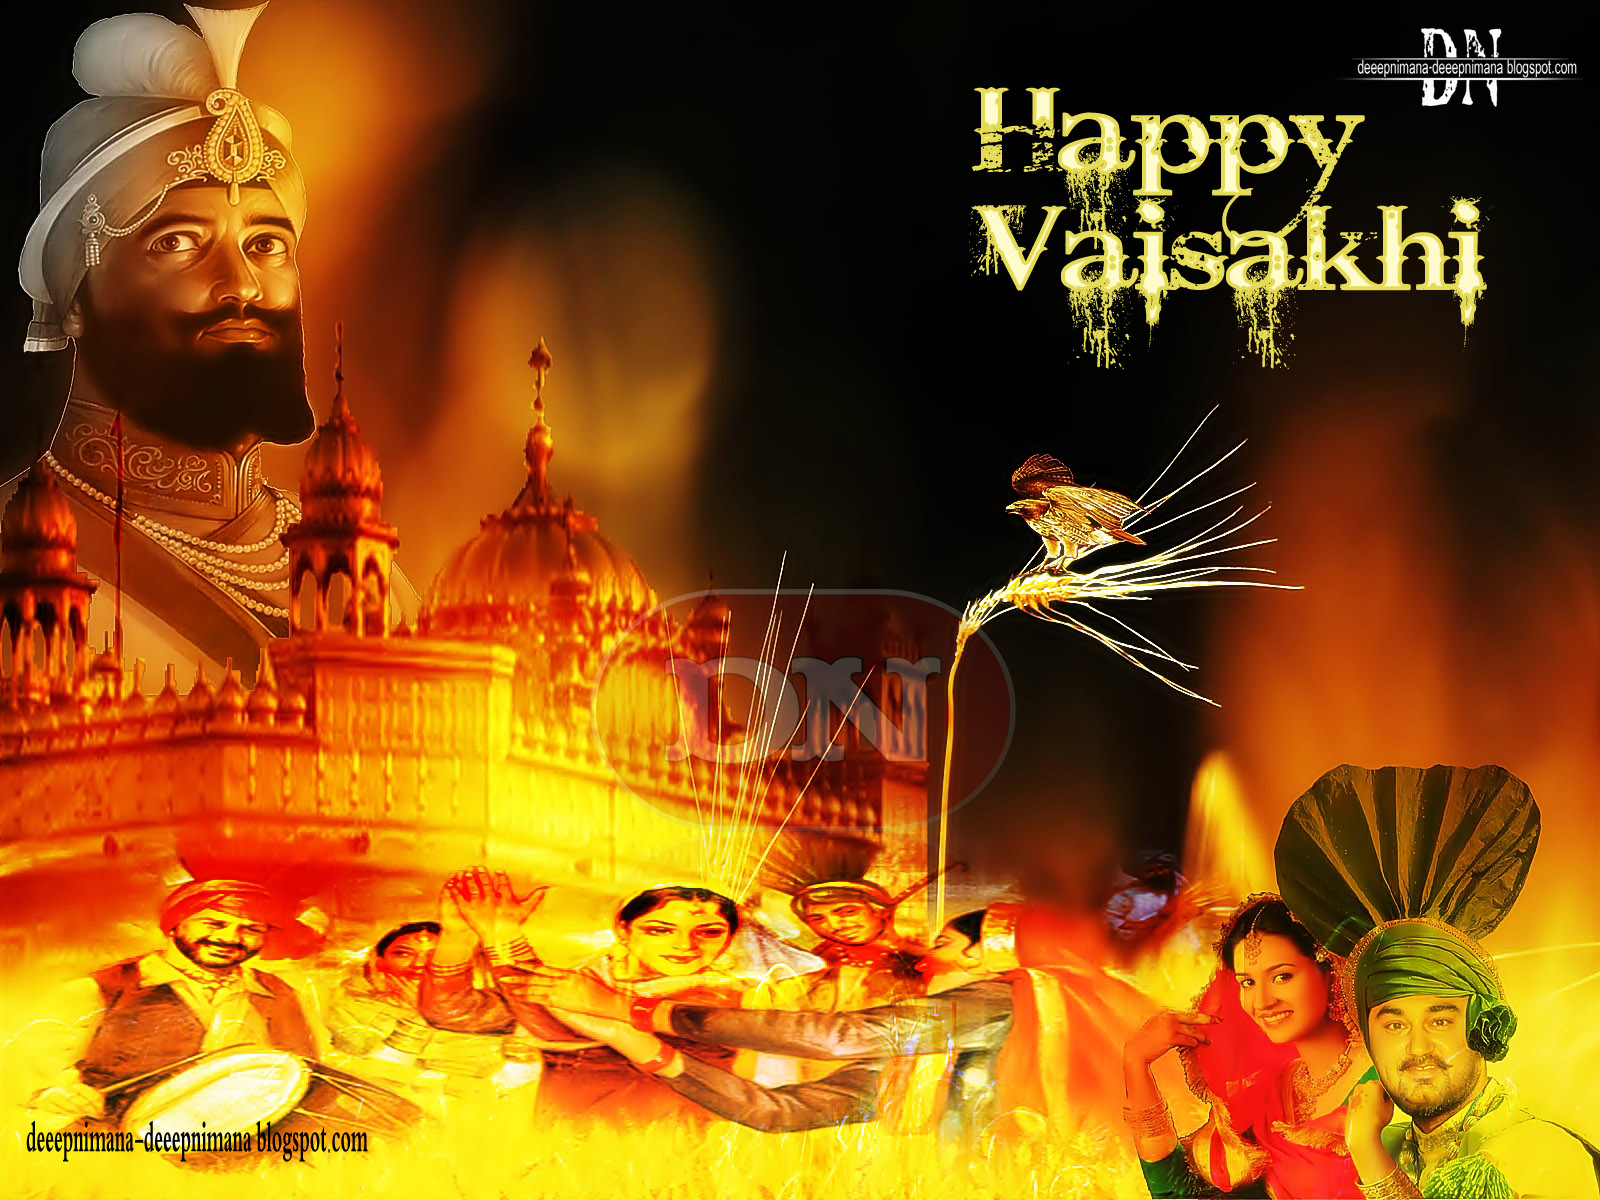 Happy Baisakhi Wishes, Greetings & Cards